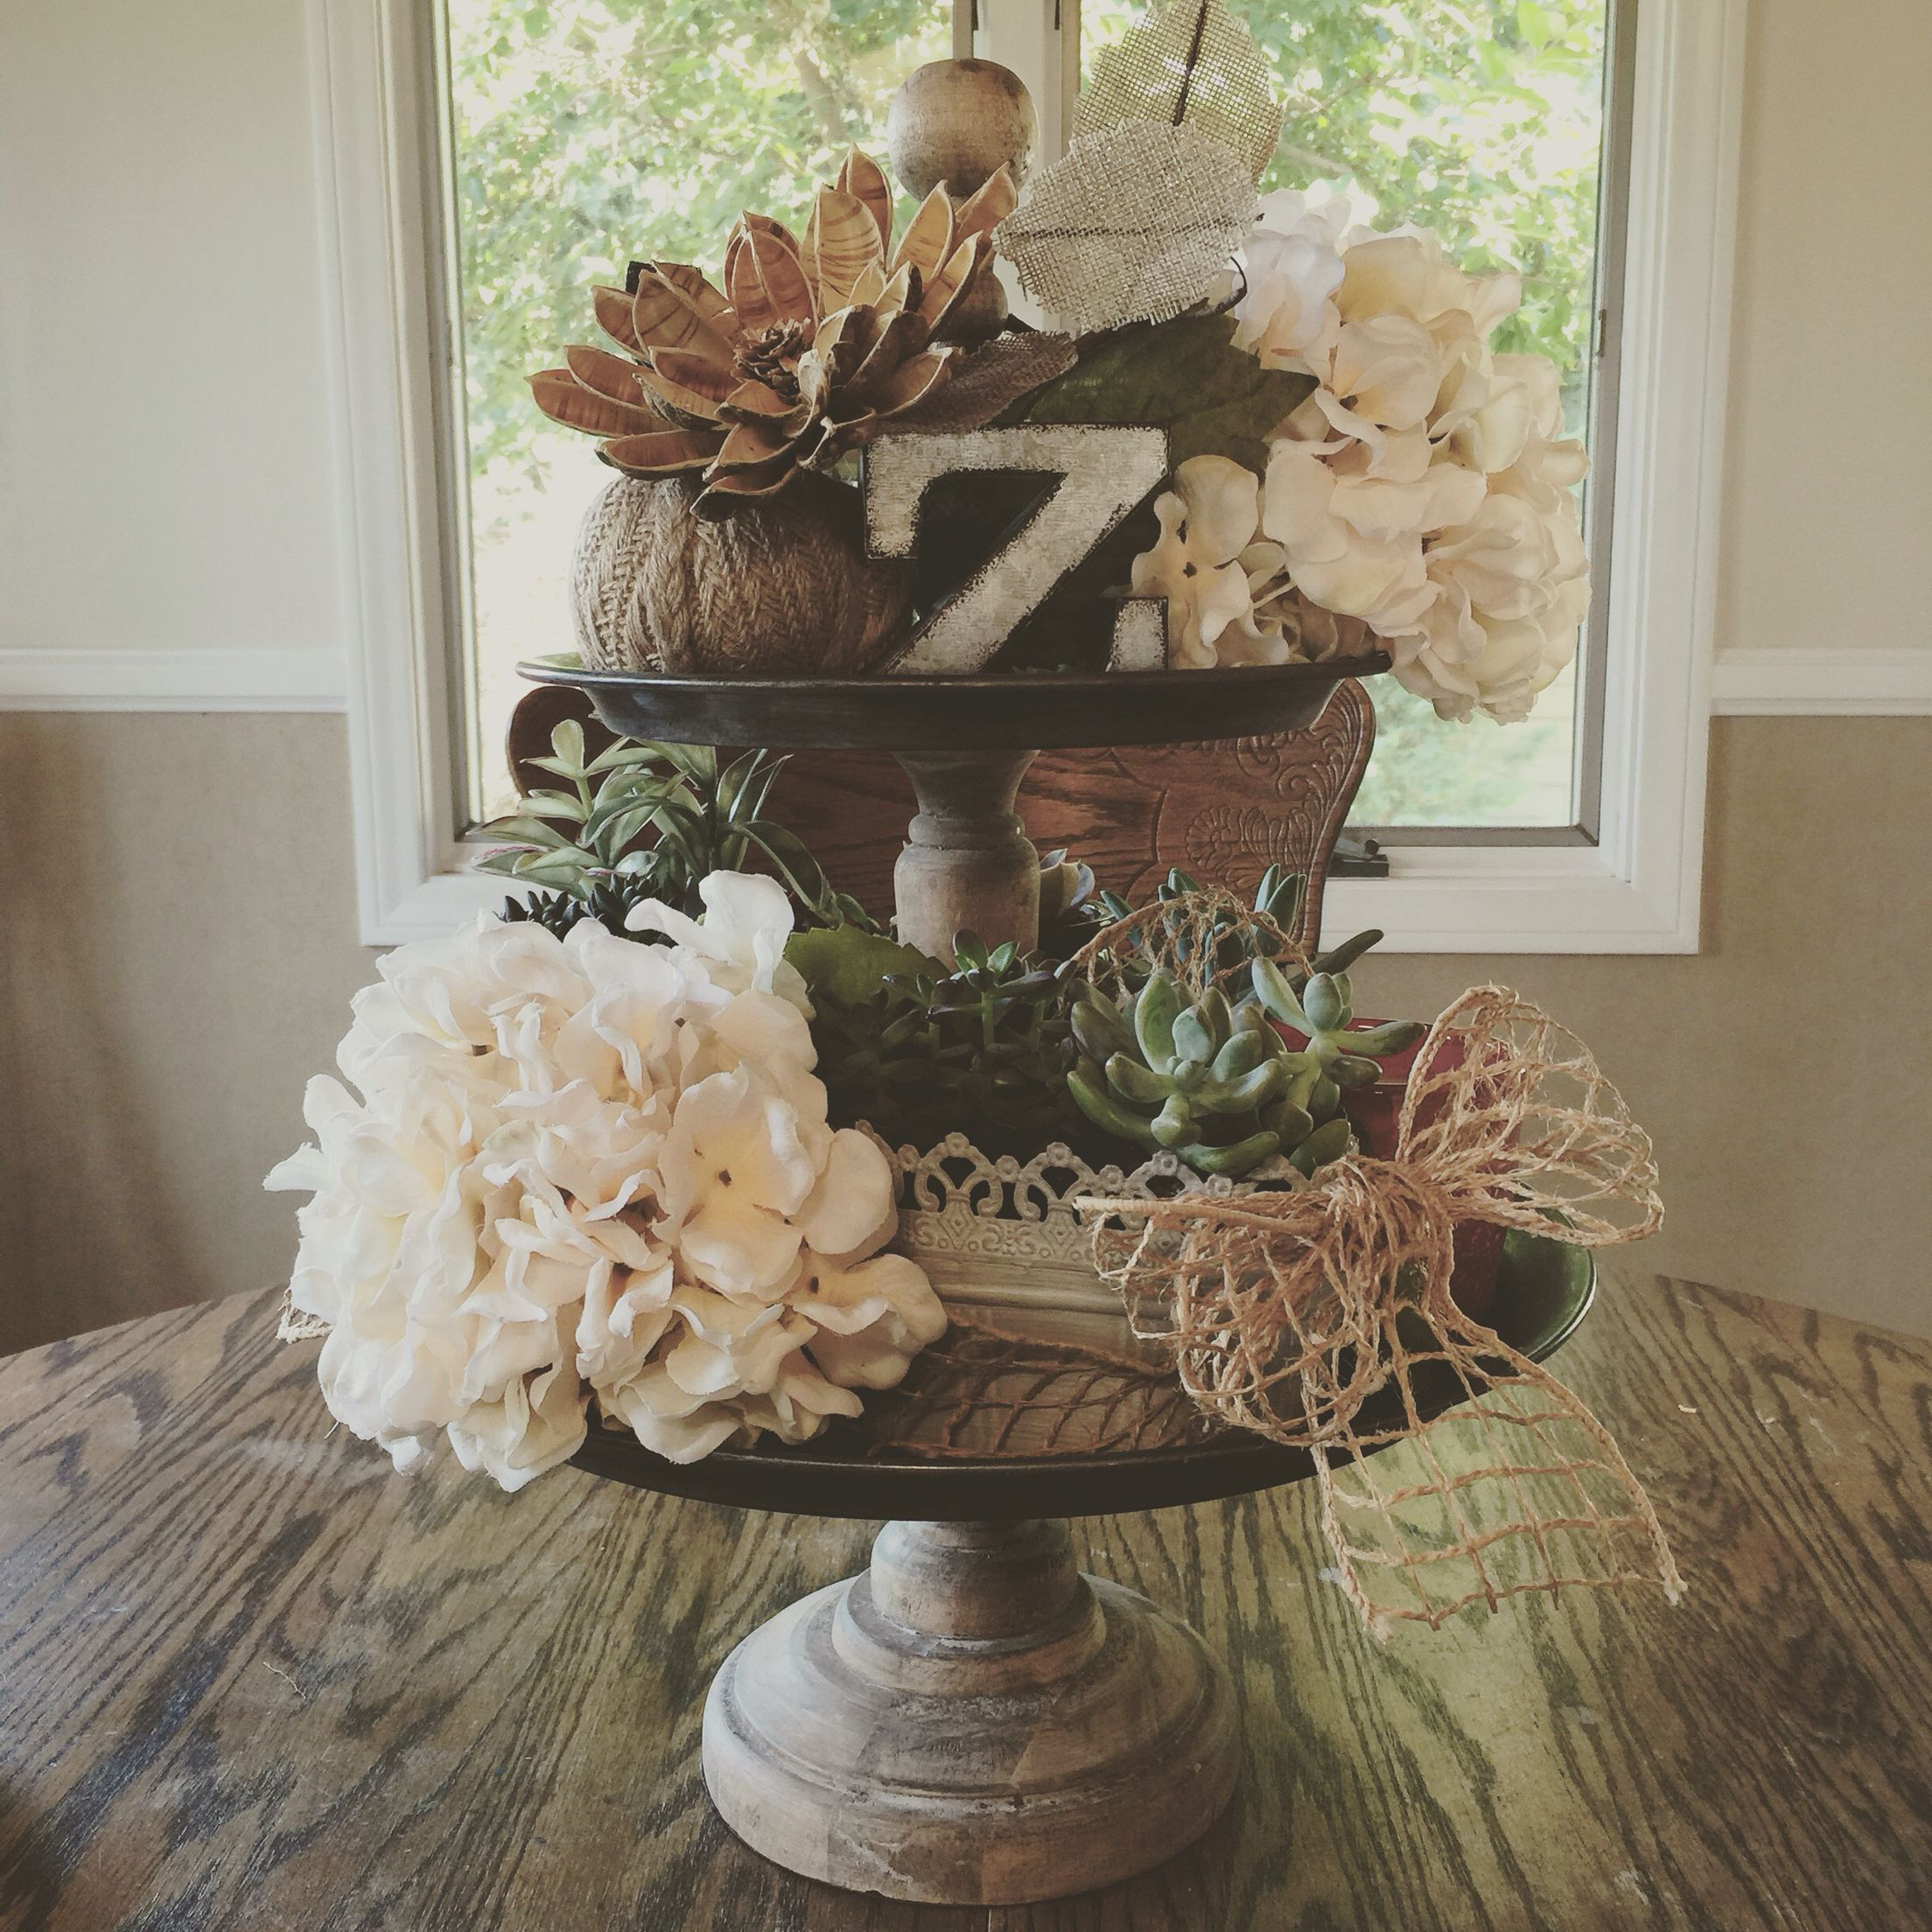 Two Tiered Tray From #magnoliamarket, Had Fun Decorating